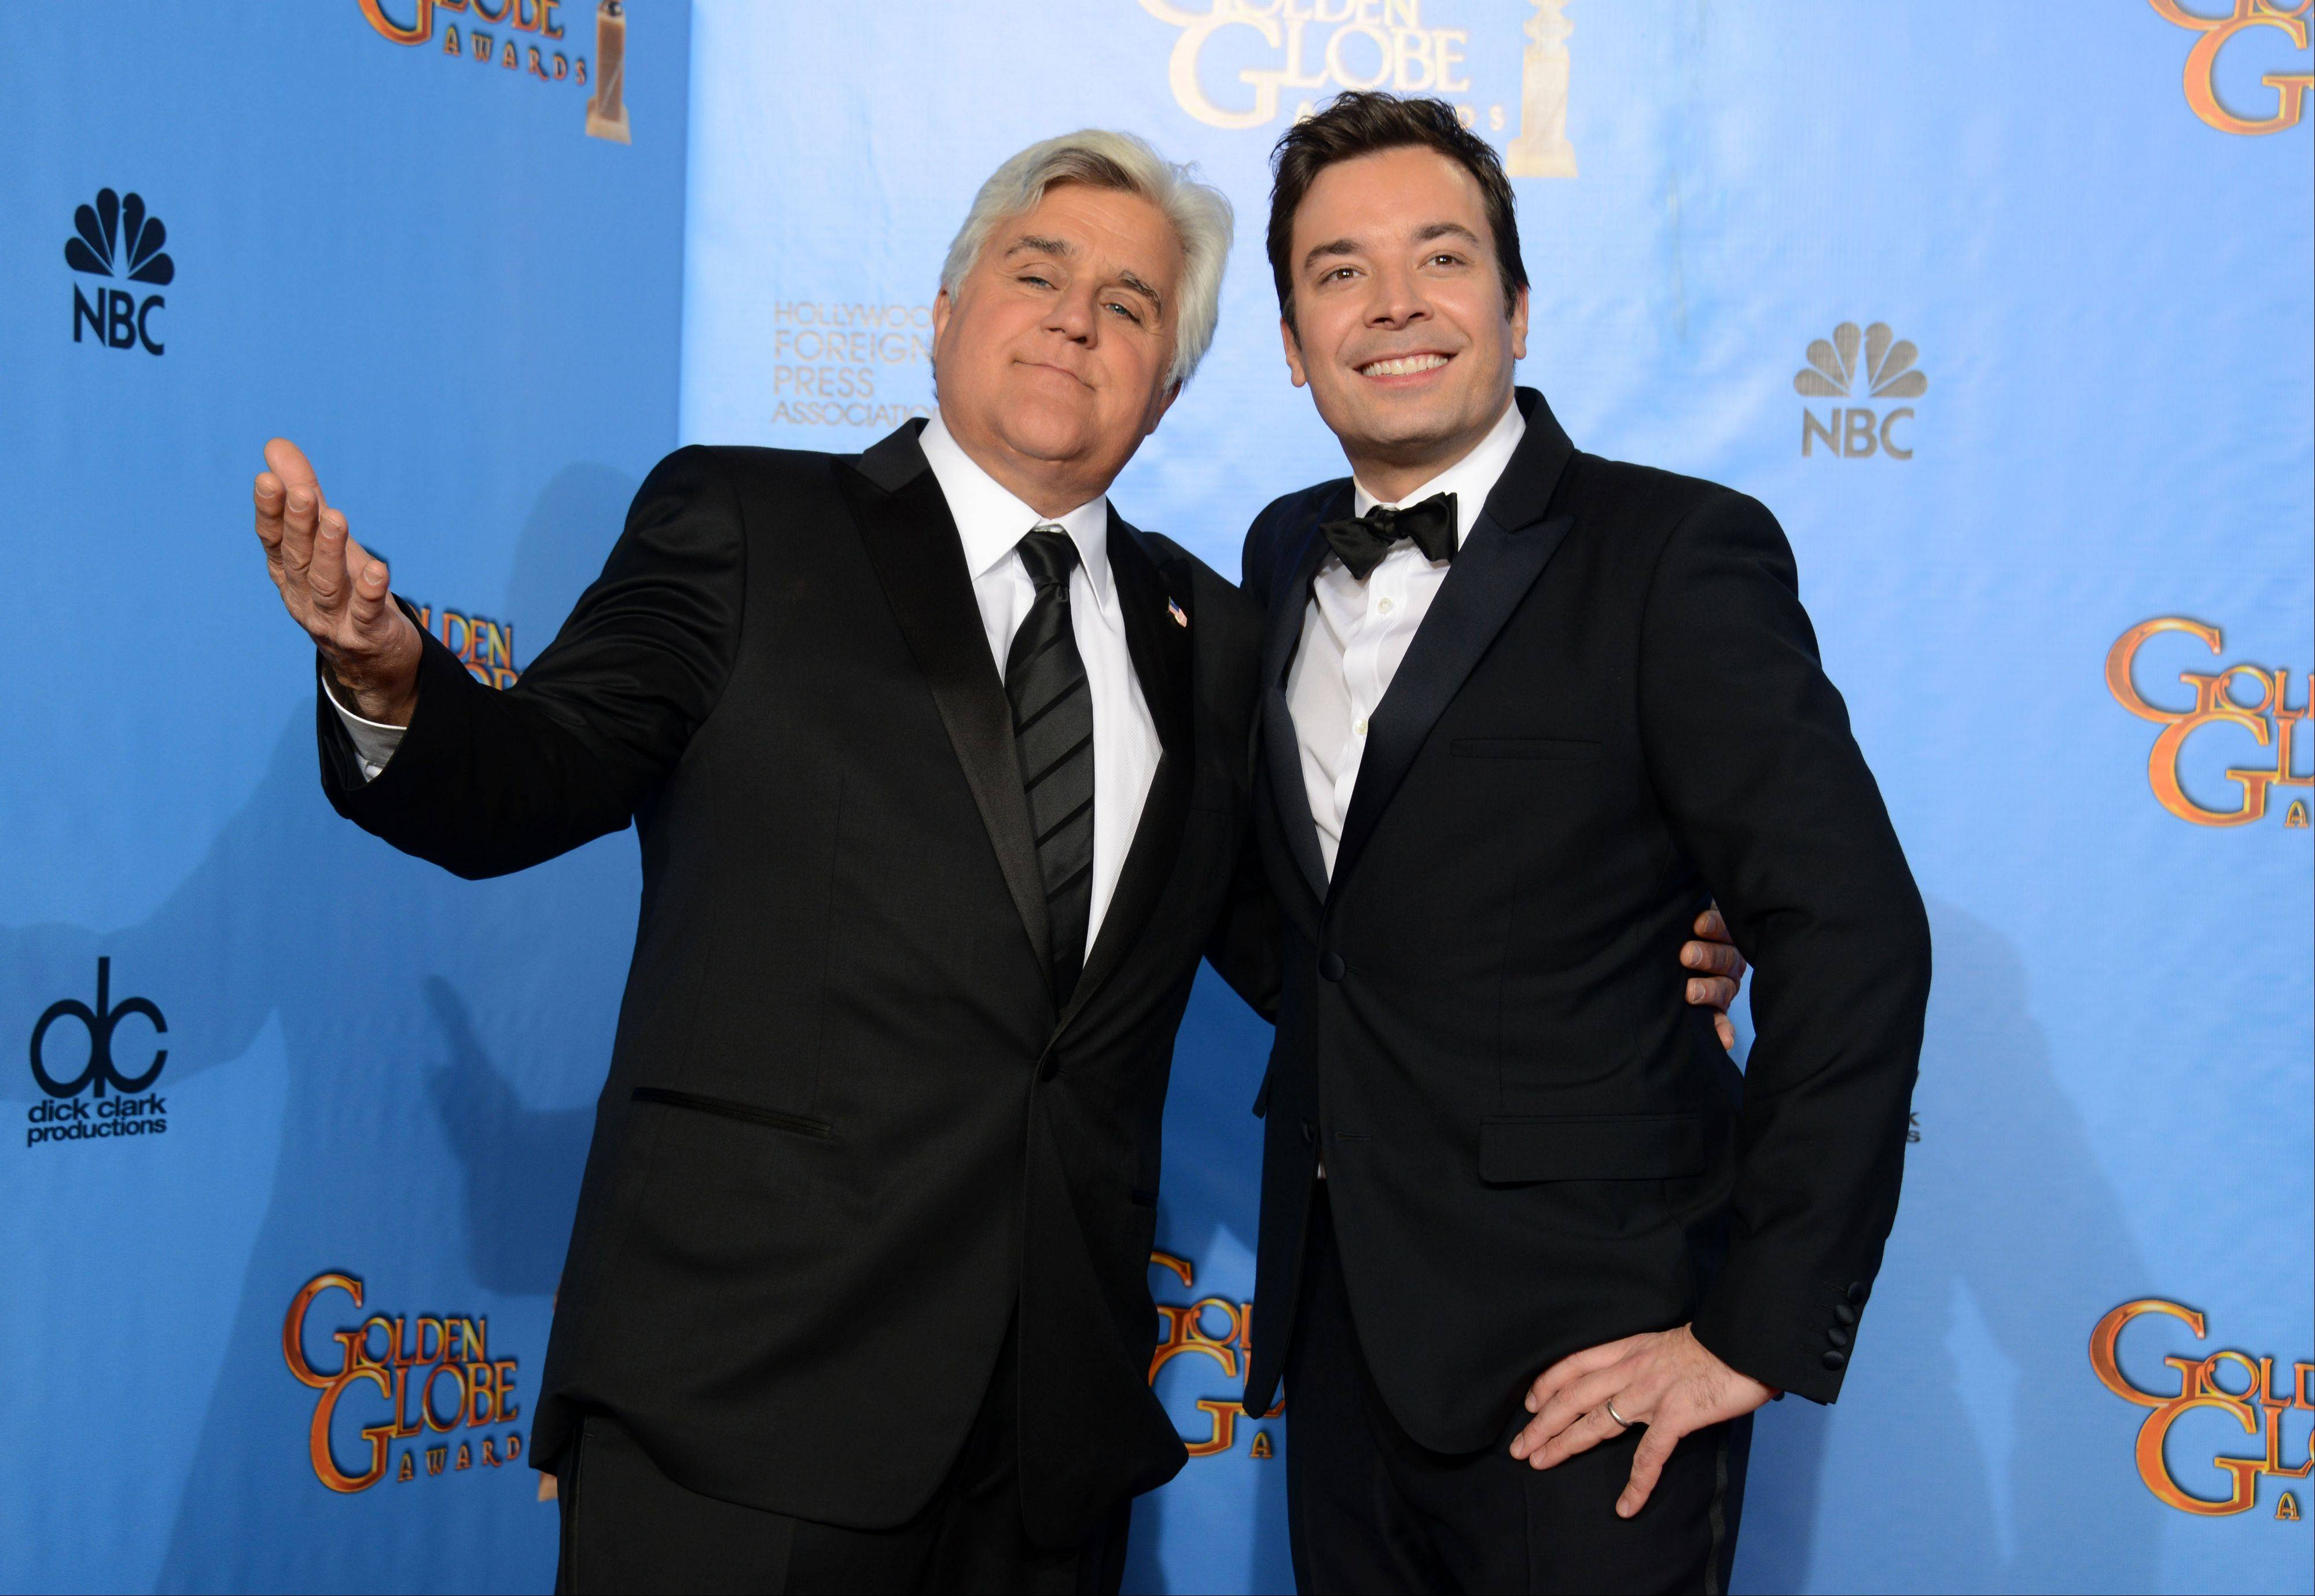 This Jan. 13 file photo shows Jay Leno, host of �The Tonight Show with Jay Leno,� left, and Jimmy Fallon, host of �Late Night with Jimmy Fallon� backstage at the 70th Annual Golden Globe Awards in Beverly Hills, Calif. As Jay Leno lobs potshots at ratings-challenged NBC in his �Tonight Show� monologues, speculation is swirling the network is taking steps to replace the host with Jimmy Fallon next year and move the show from Burbank to New York.